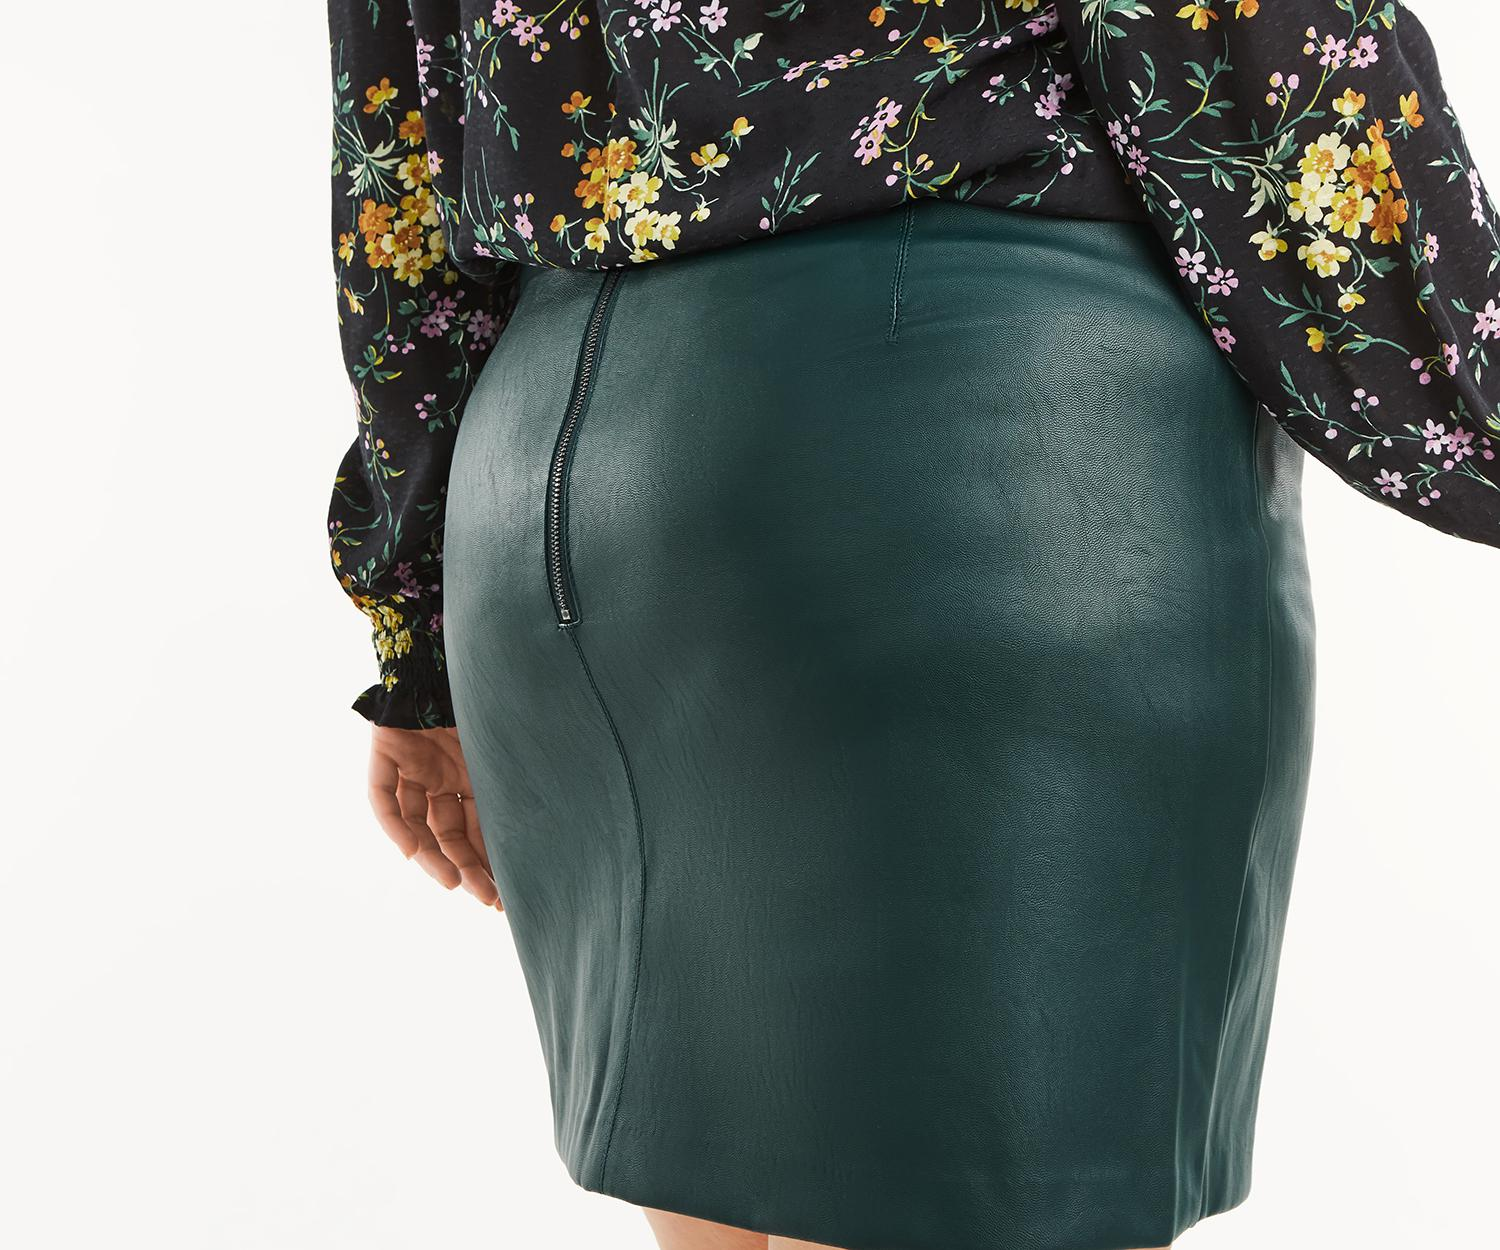 f5aeef13a Oasis Curve Leather Look Skirt* in Green - Save 27.77777777777777 ...